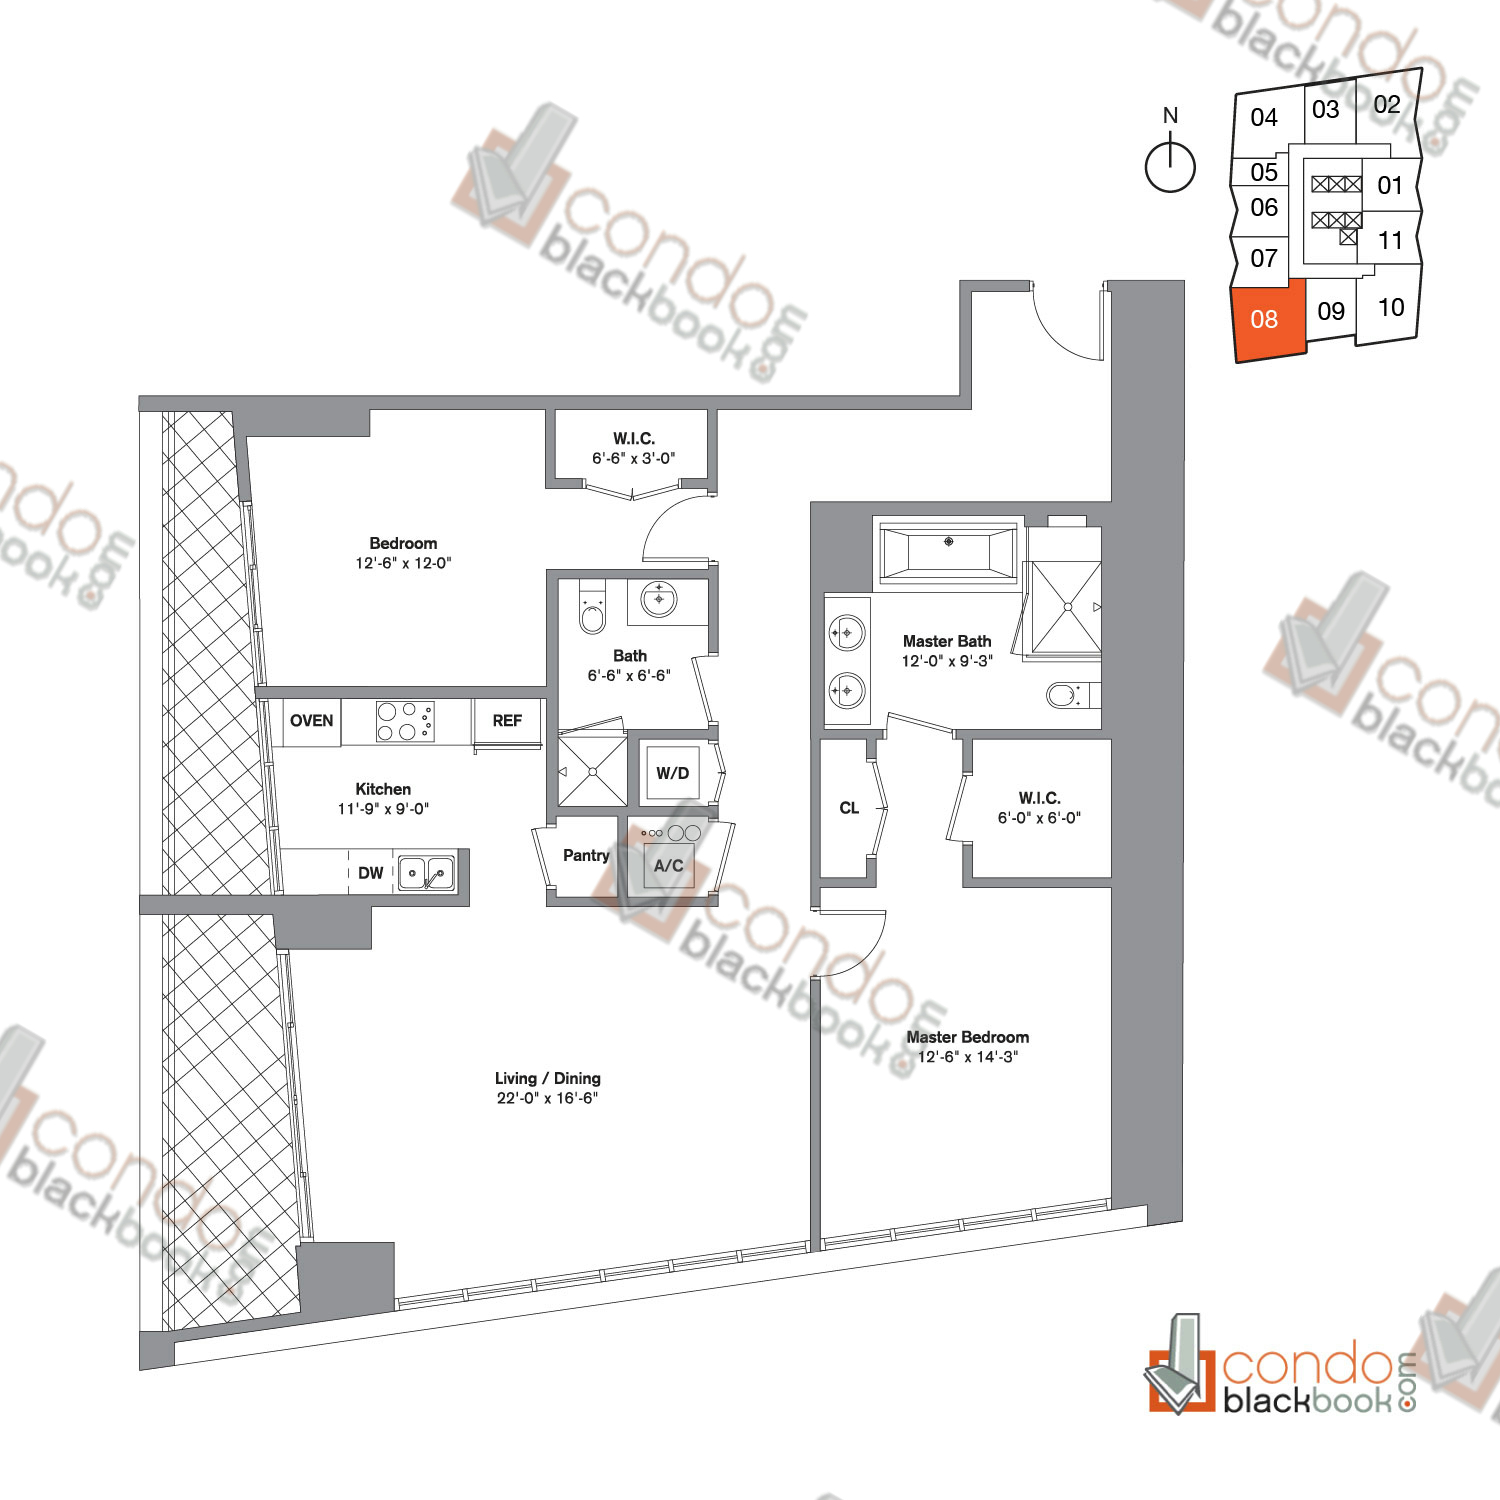 Floor plan for Icon Brickell Viceroy Brickell Miami, model Unit A, line 08,  2/2 bedrooms, 1,459 sq ft